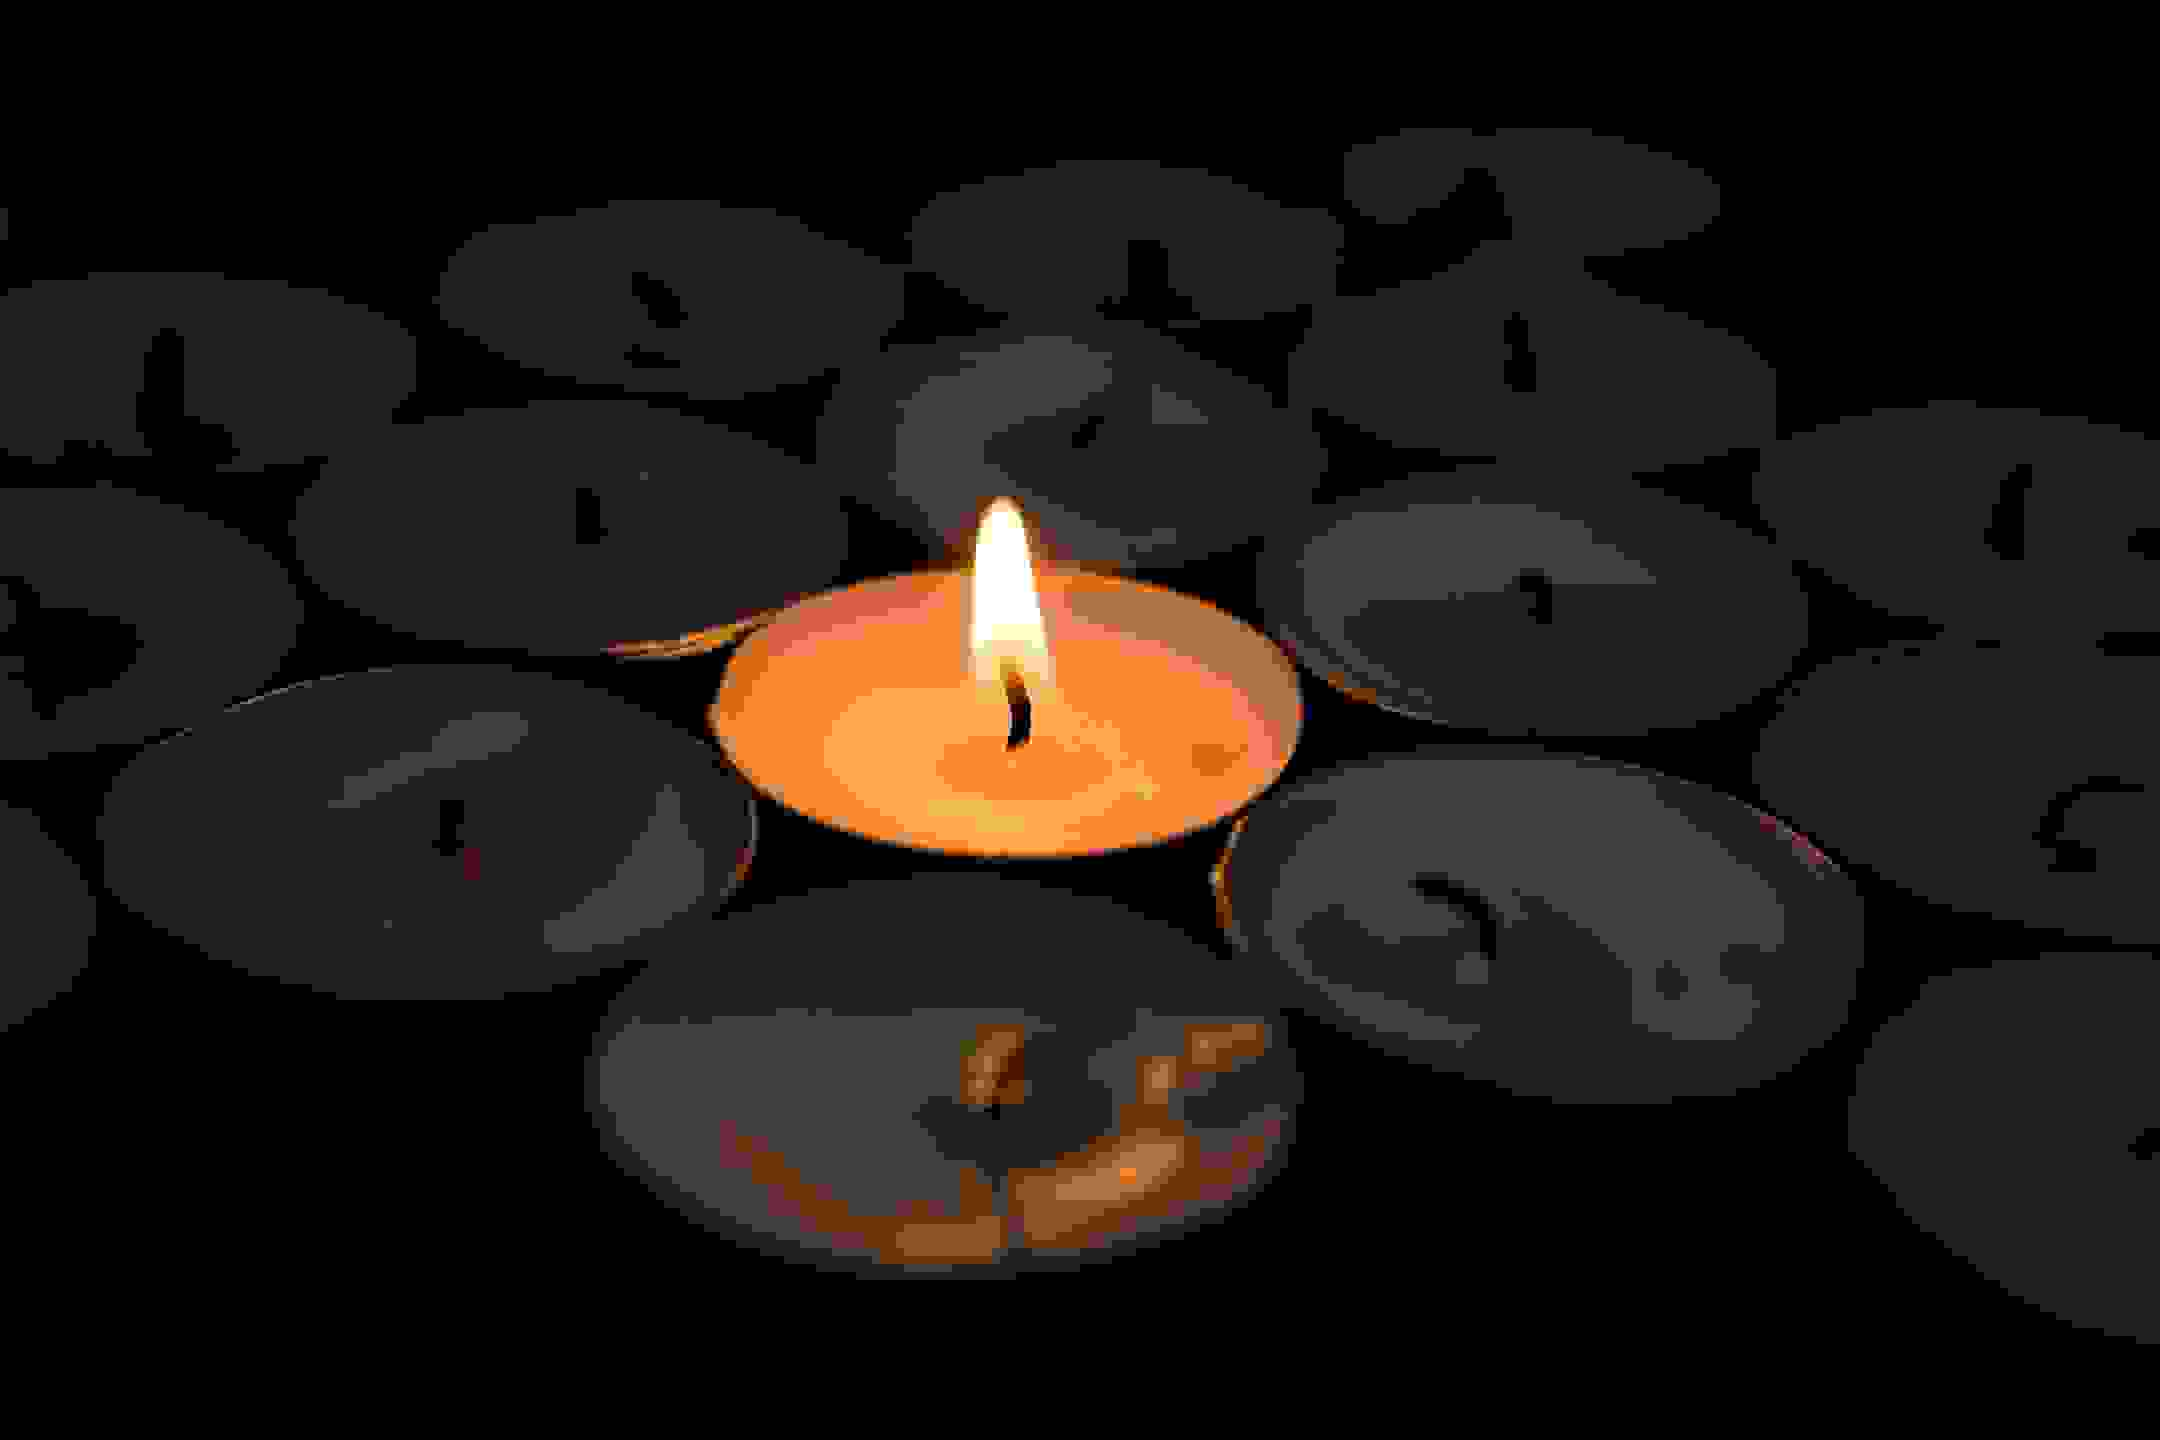 A candle light for peace and prayer